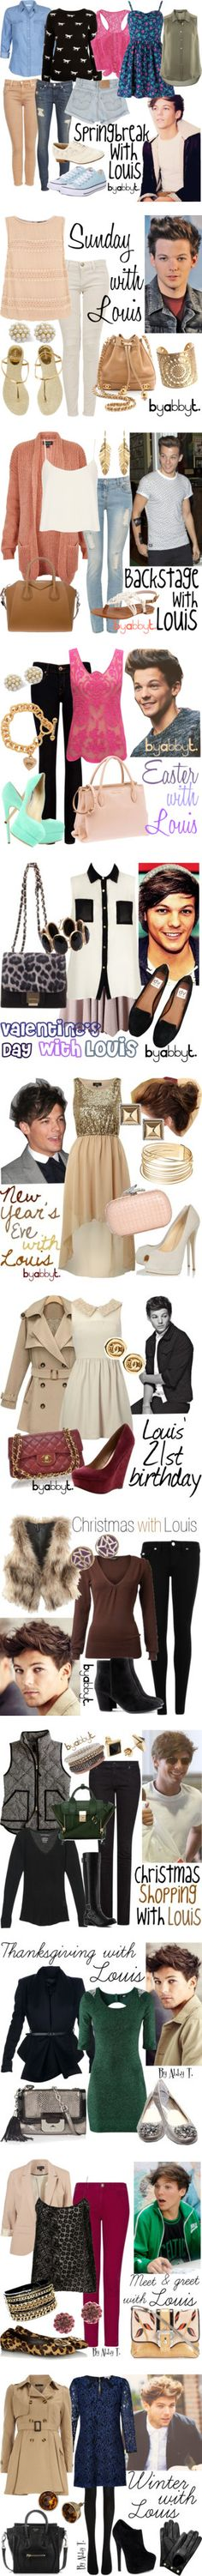 """Louis Tomlinson Inspired Fashion"" by abbytamase on Polyvore. I don't care about Lois I just love the outfits"